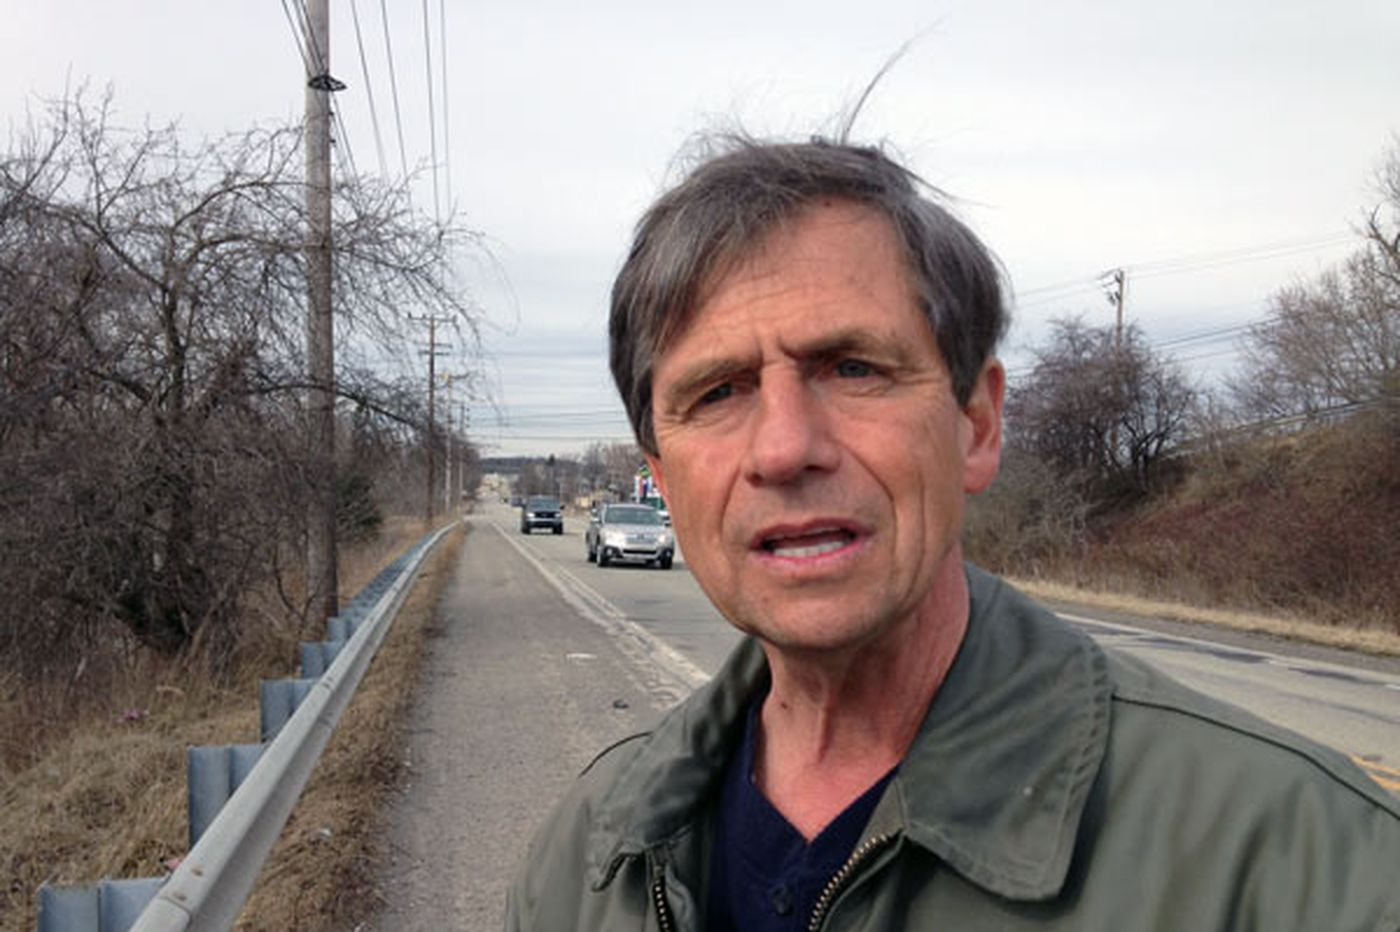 For Sestak, the path to Senate runs 422 miles